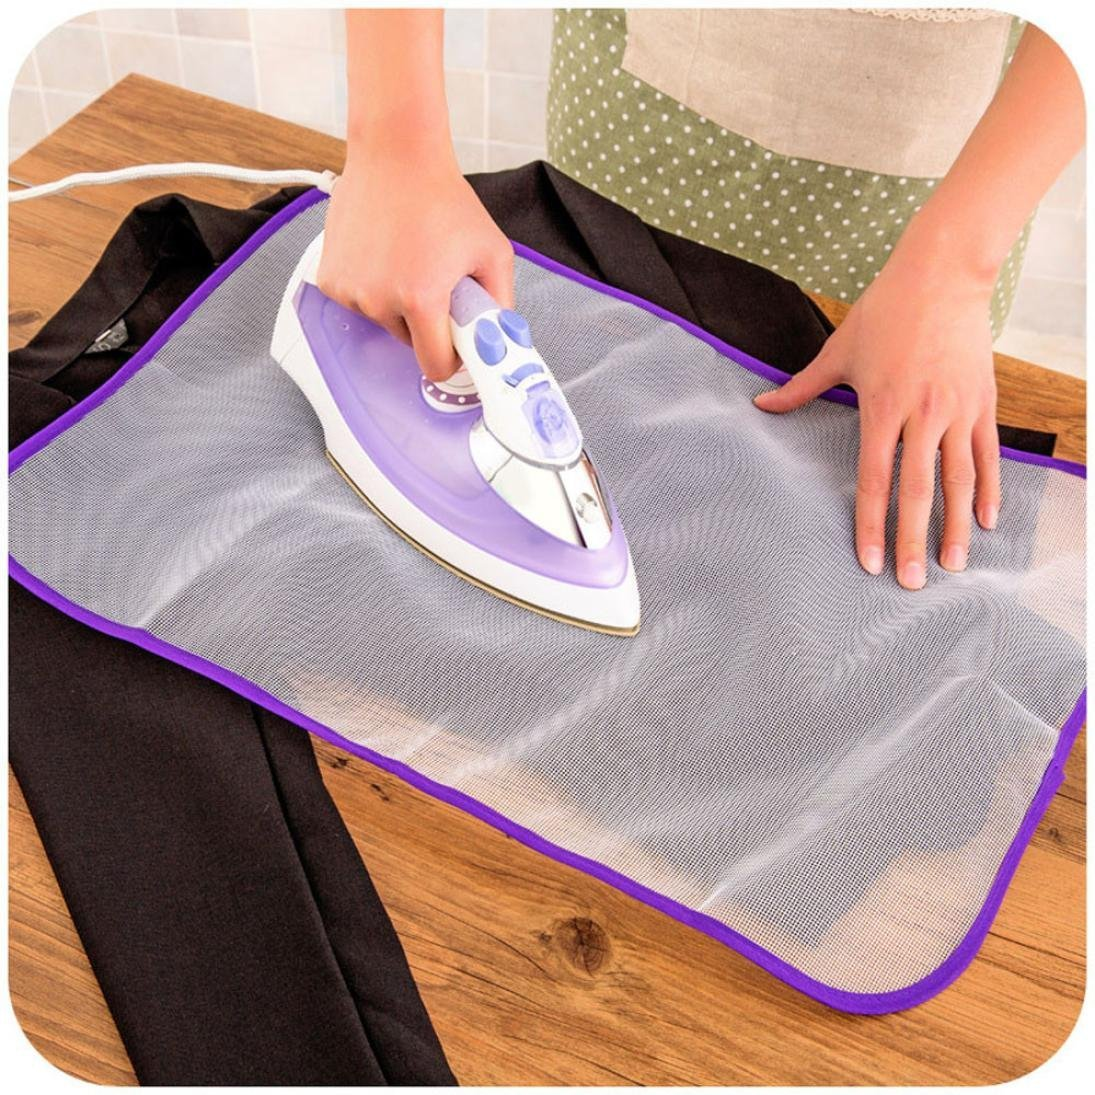 SHJNHAN 1x Ironing Board Clothes Protector, Insulation Clothing Pad Laundry Polyester